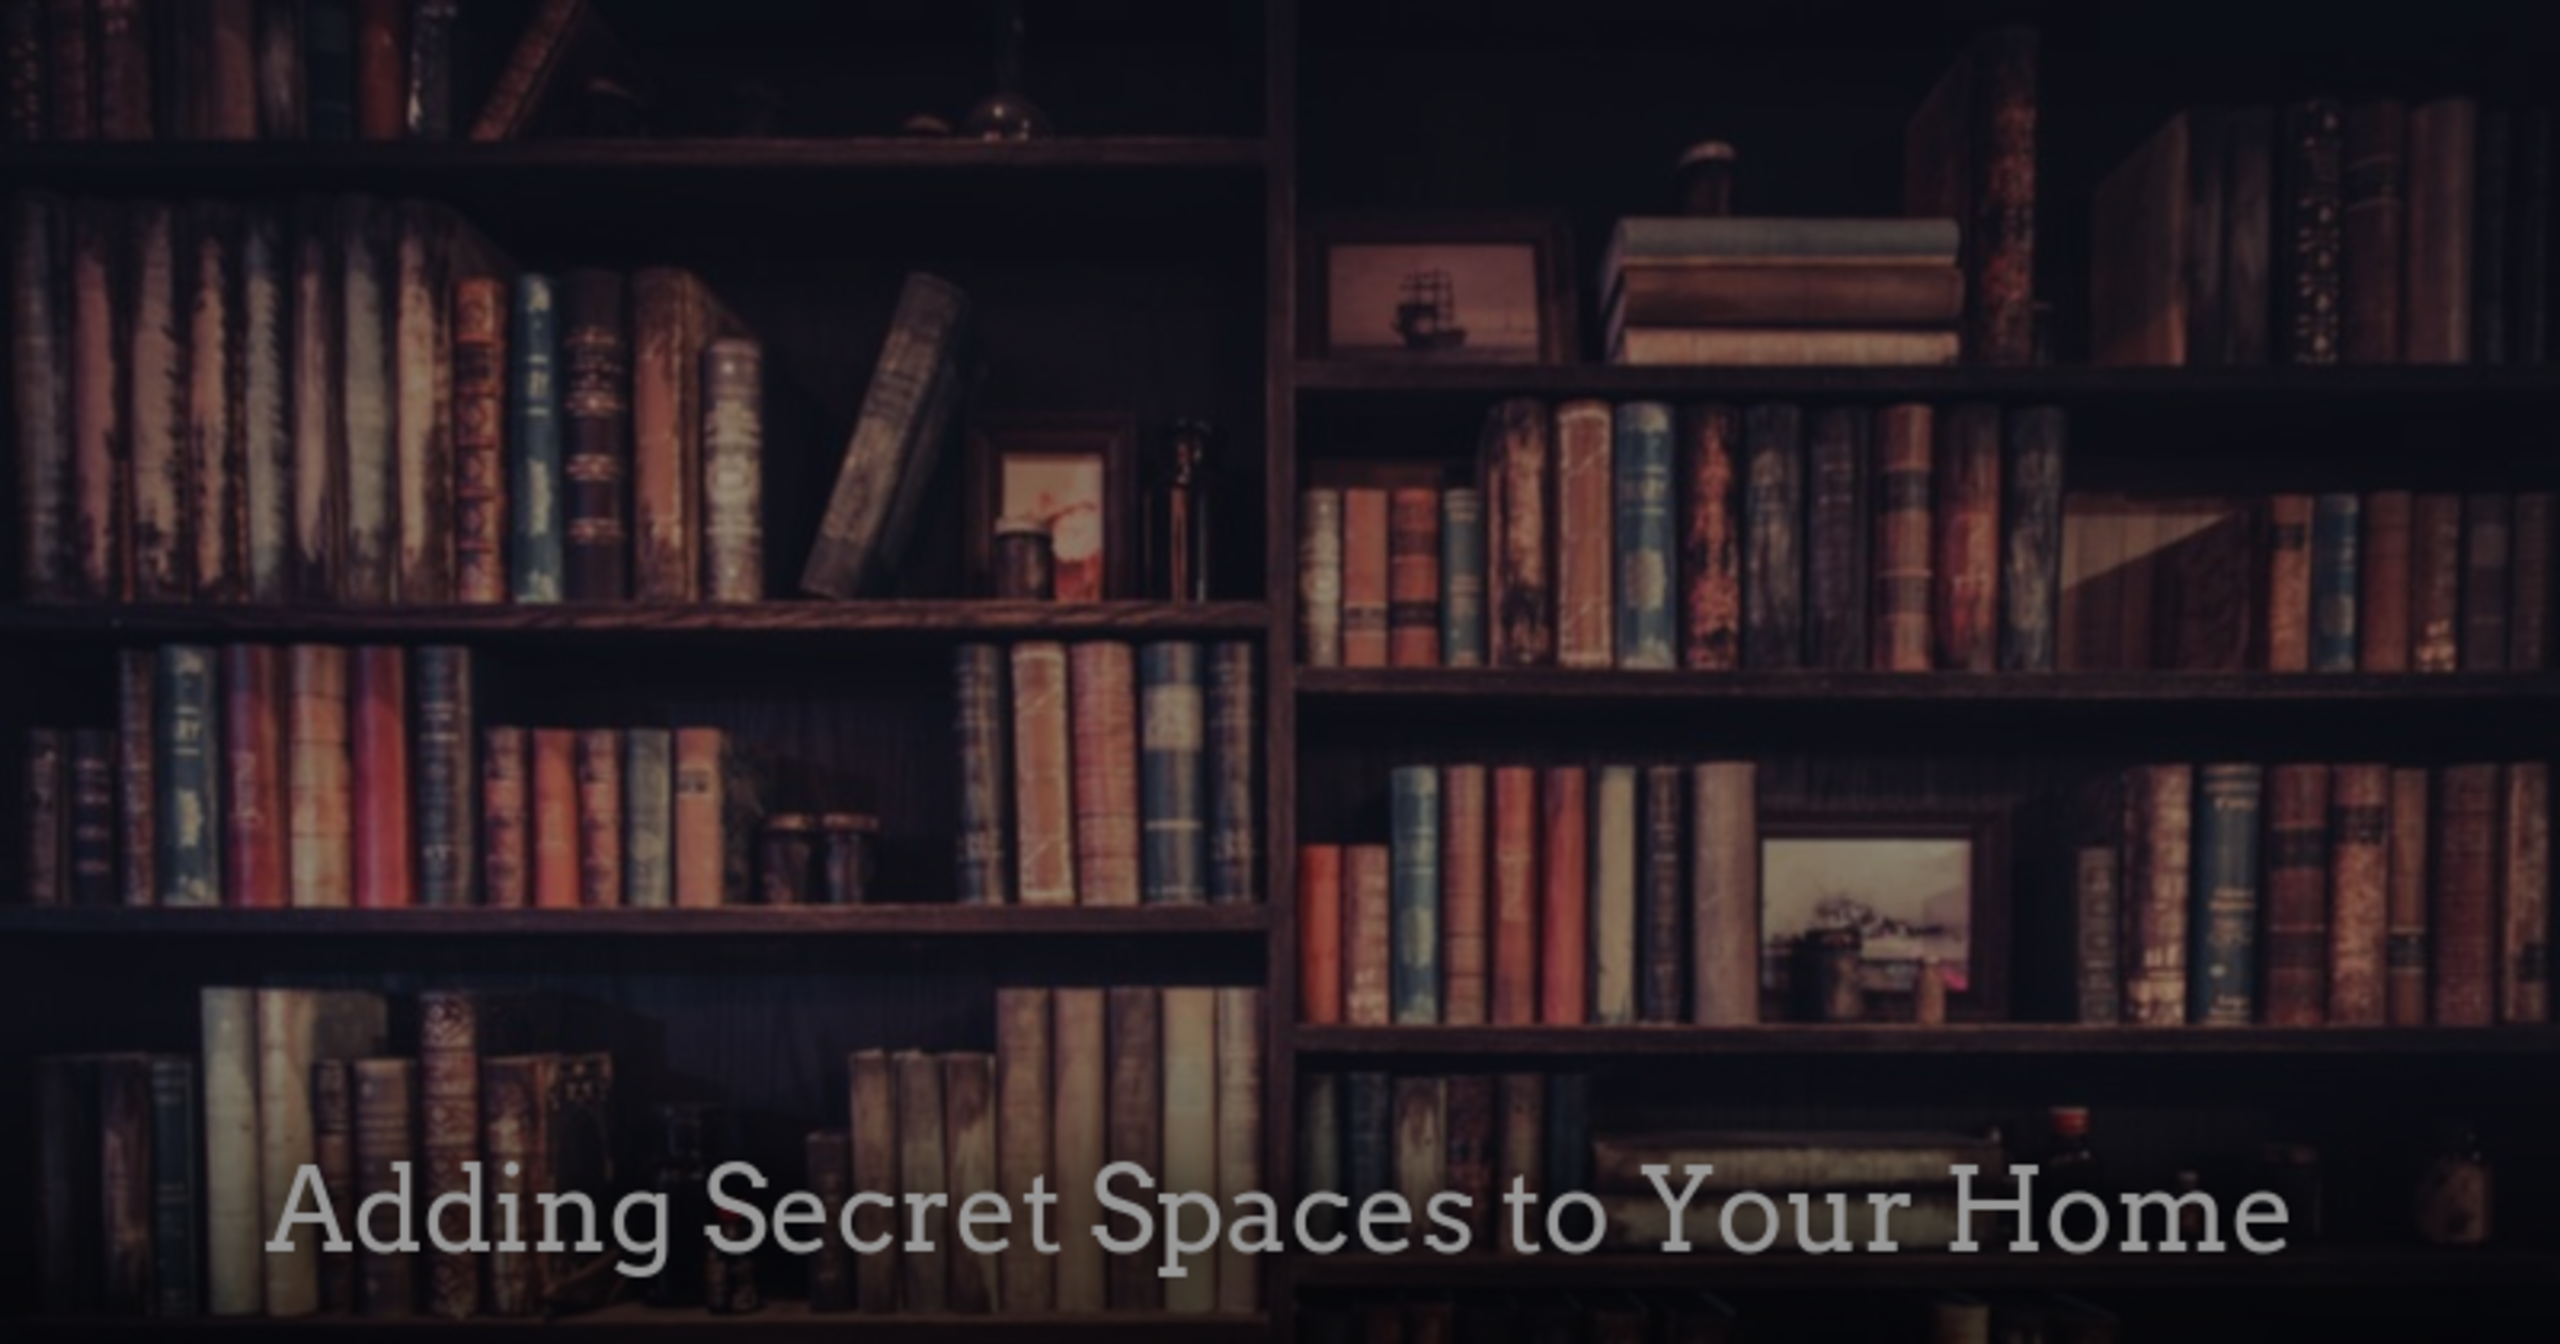 Adding Secret Spaces to Your Home